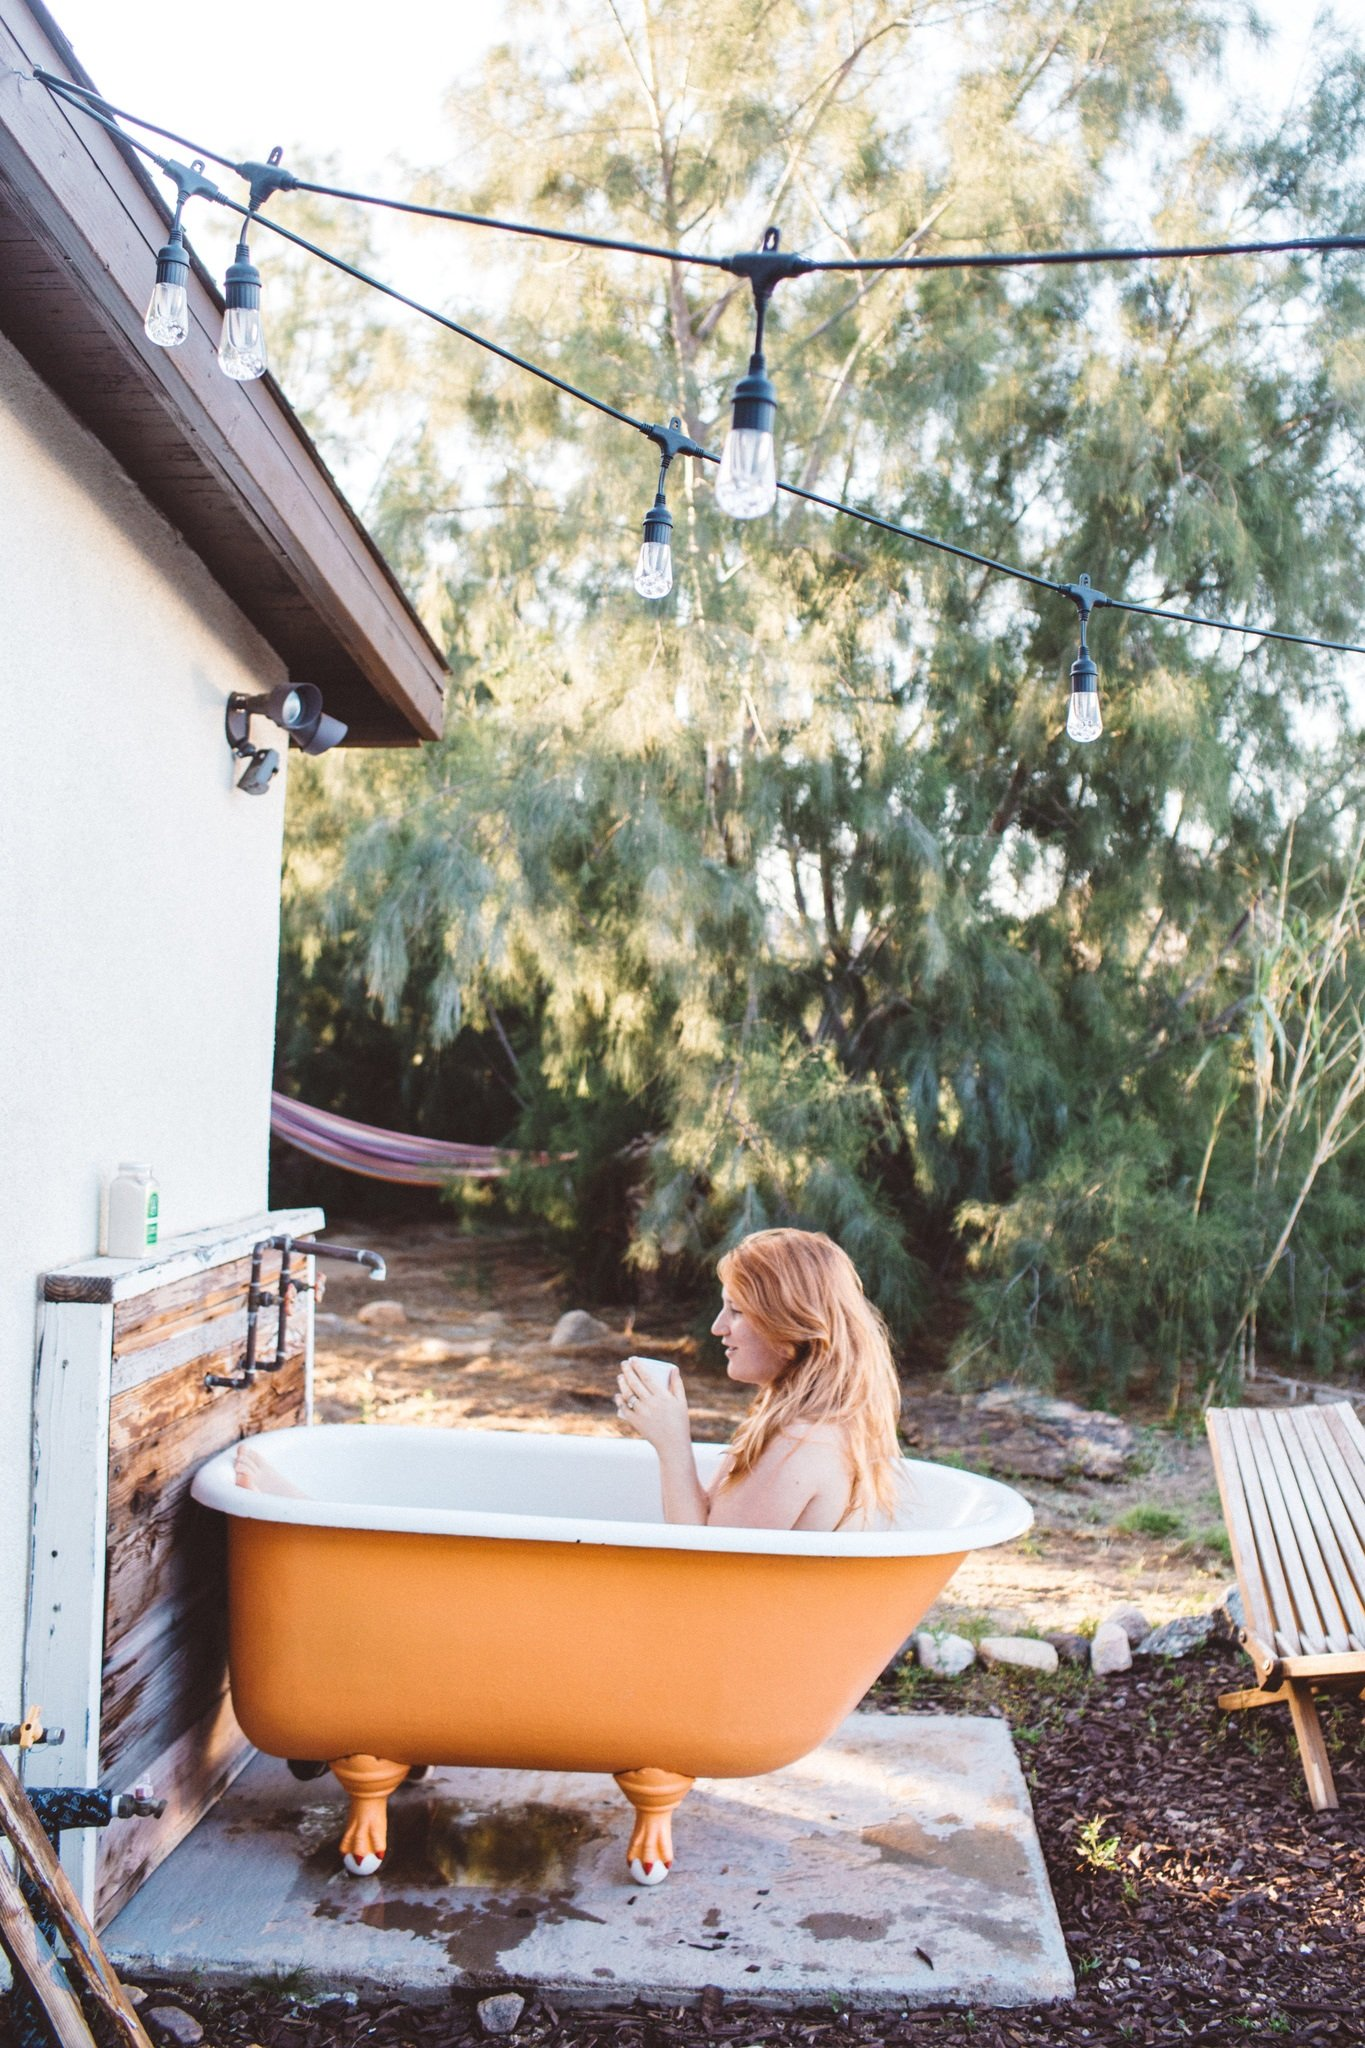 Joshua Tree airbnb with orange bath tub